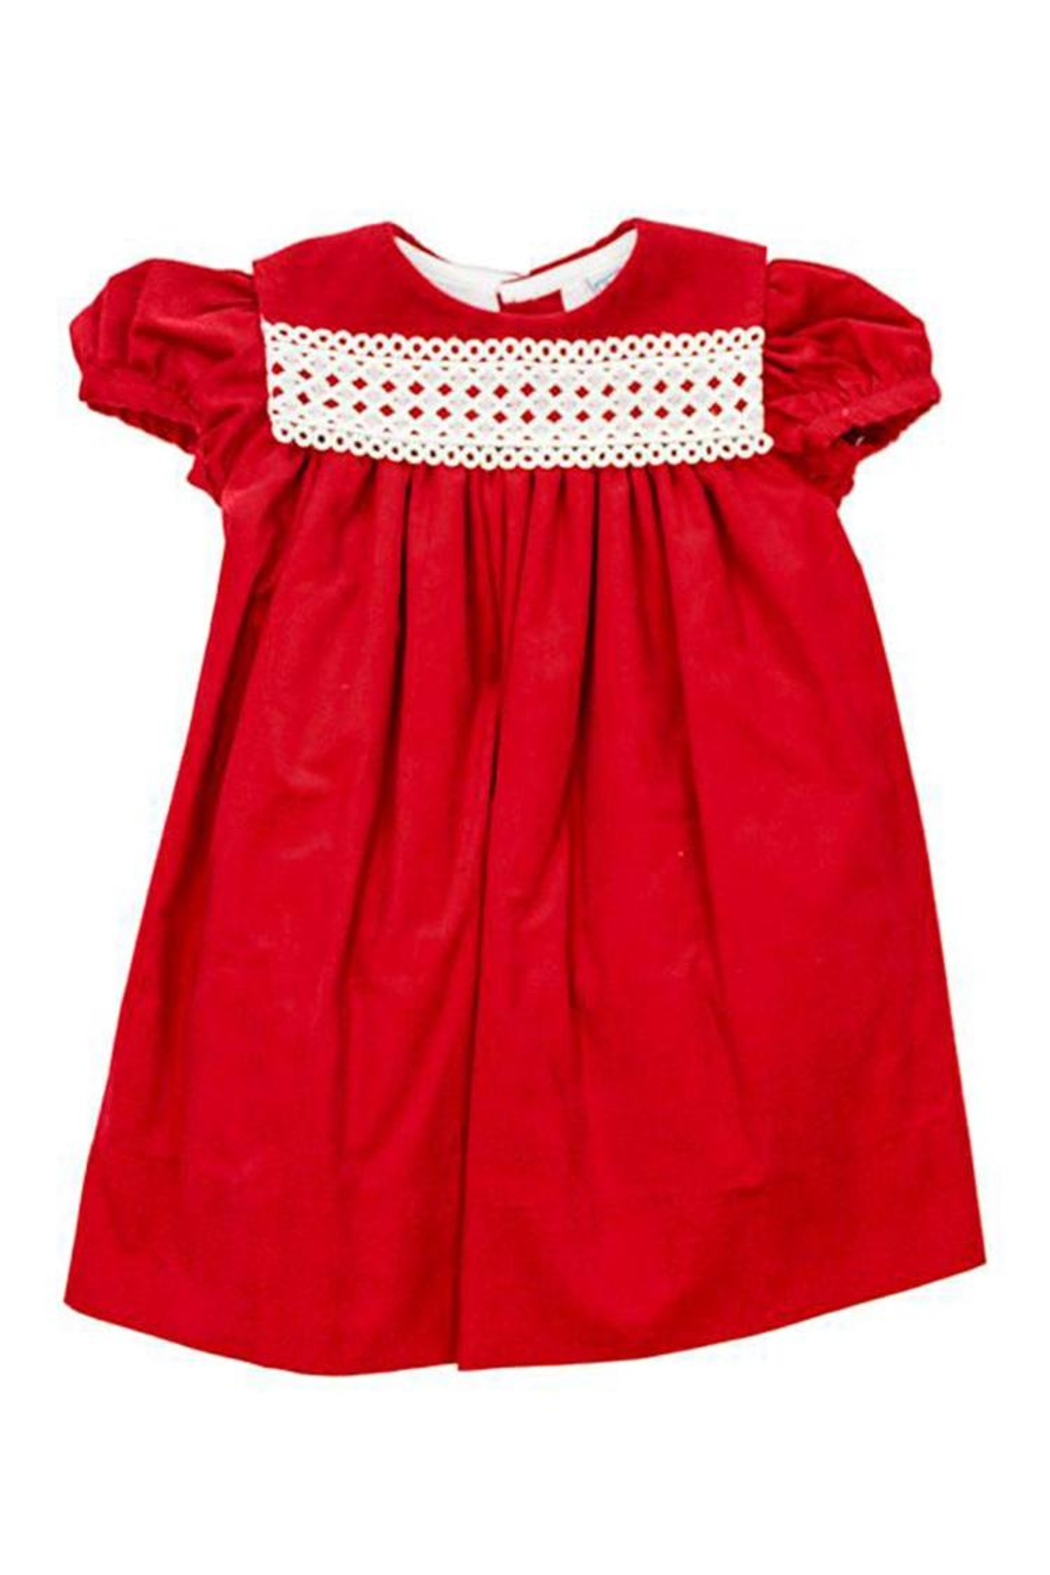 Bailey Boys Red Corduroy/lace Float-Dress - Back Cropped Image